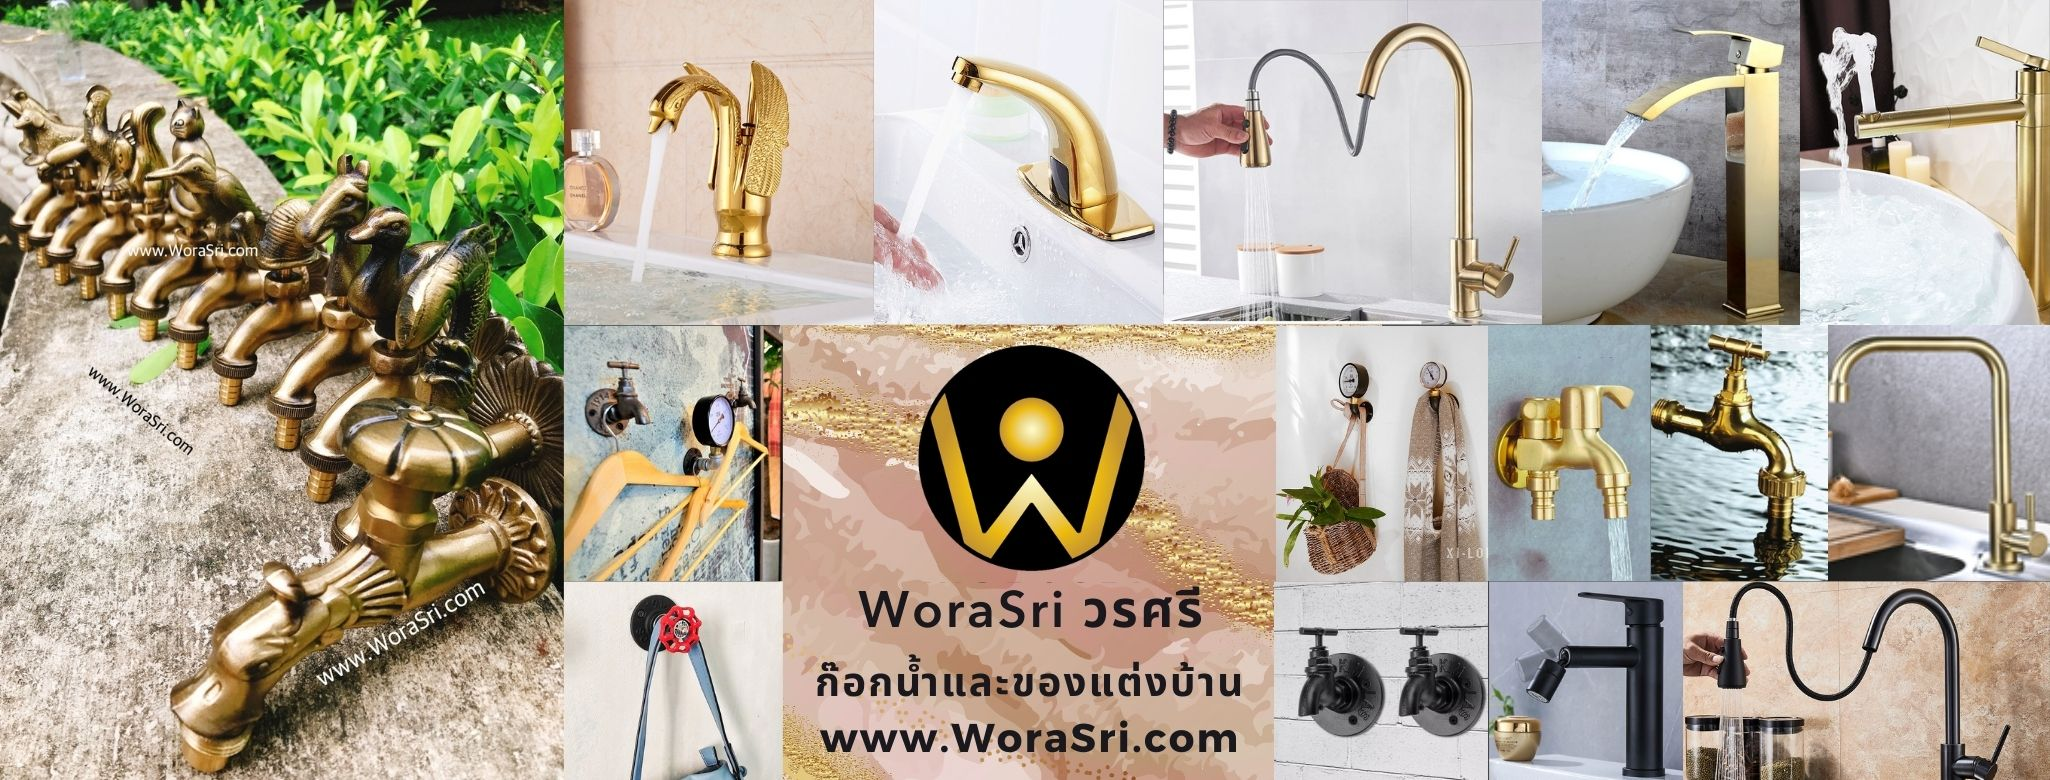 WoraSri Faucet and Home Decor